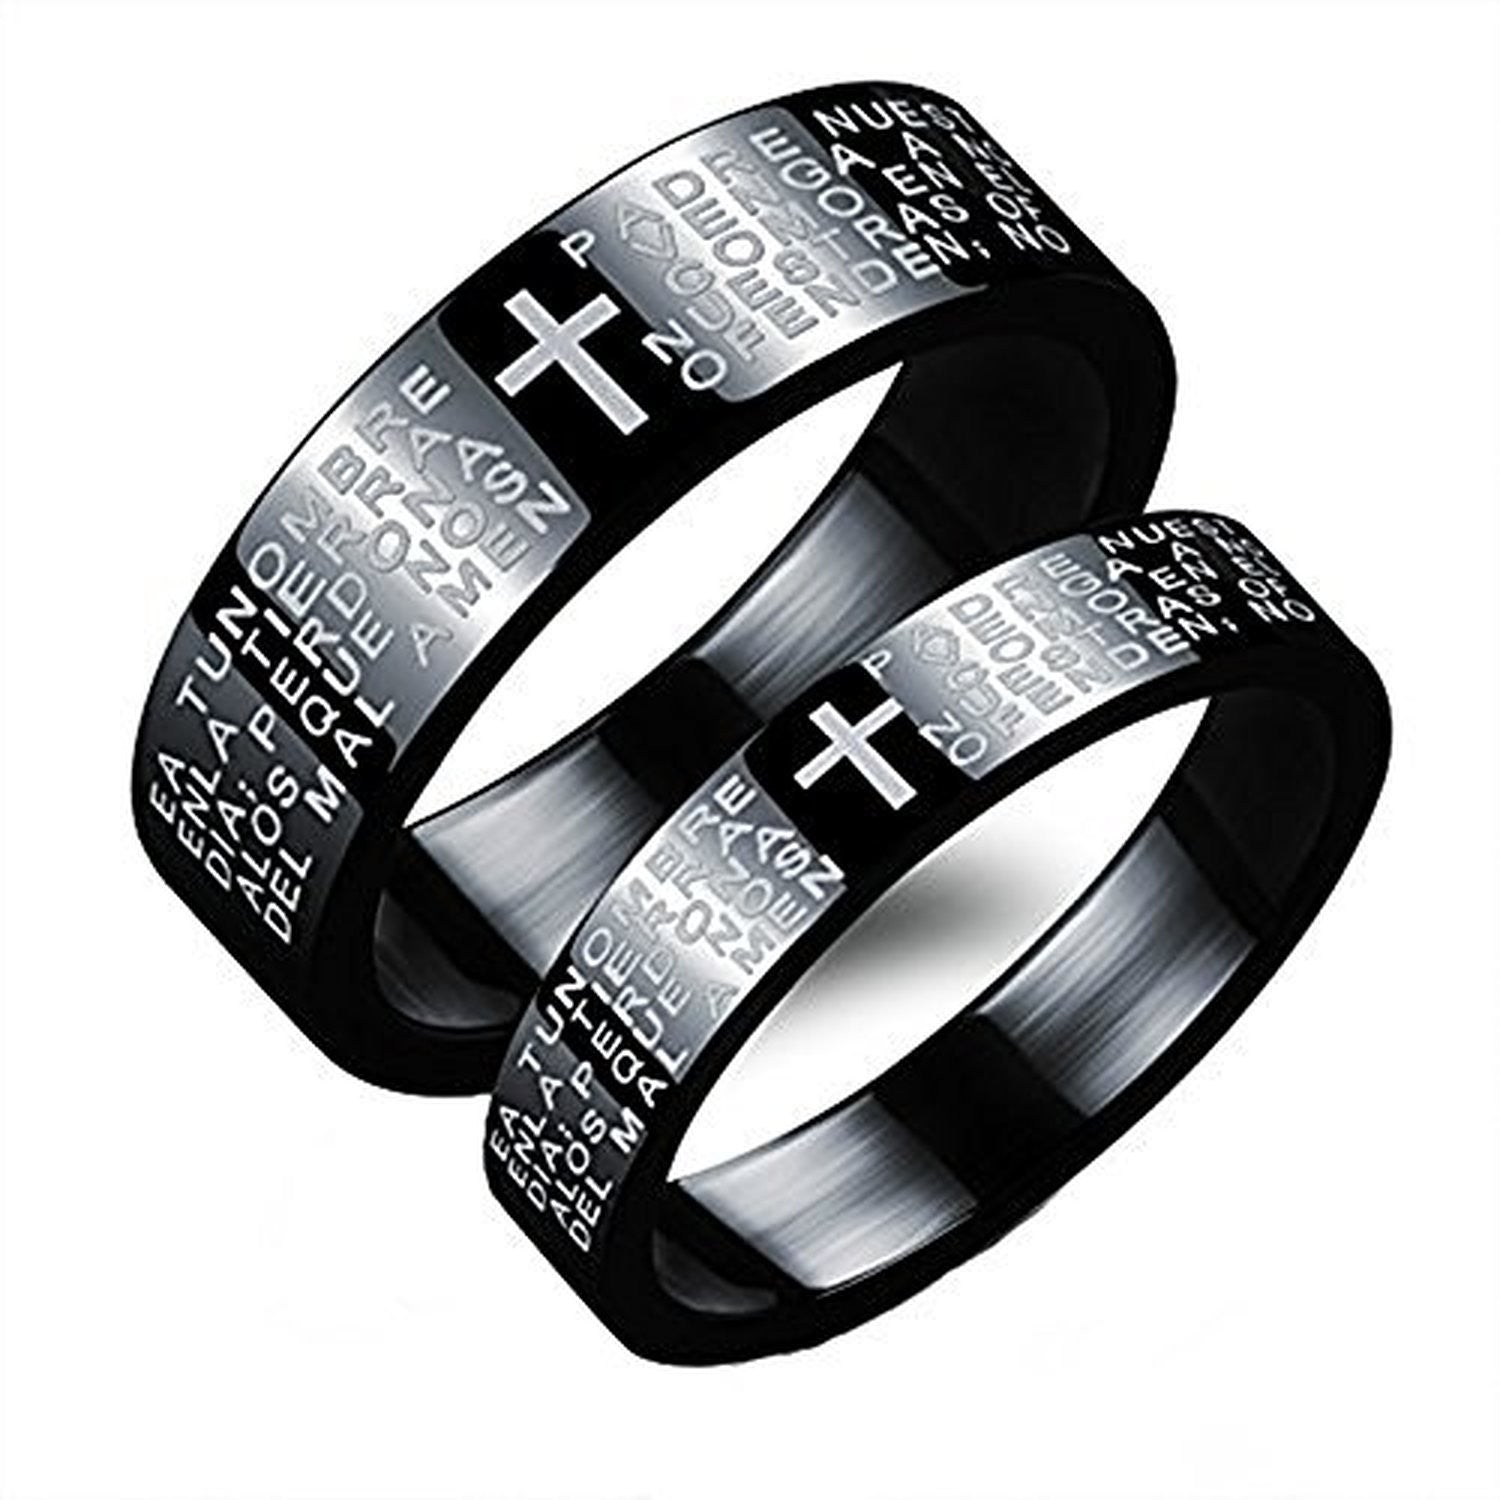 Stainless Steel Couples Matching Rings Set Bible in Spanish Lords